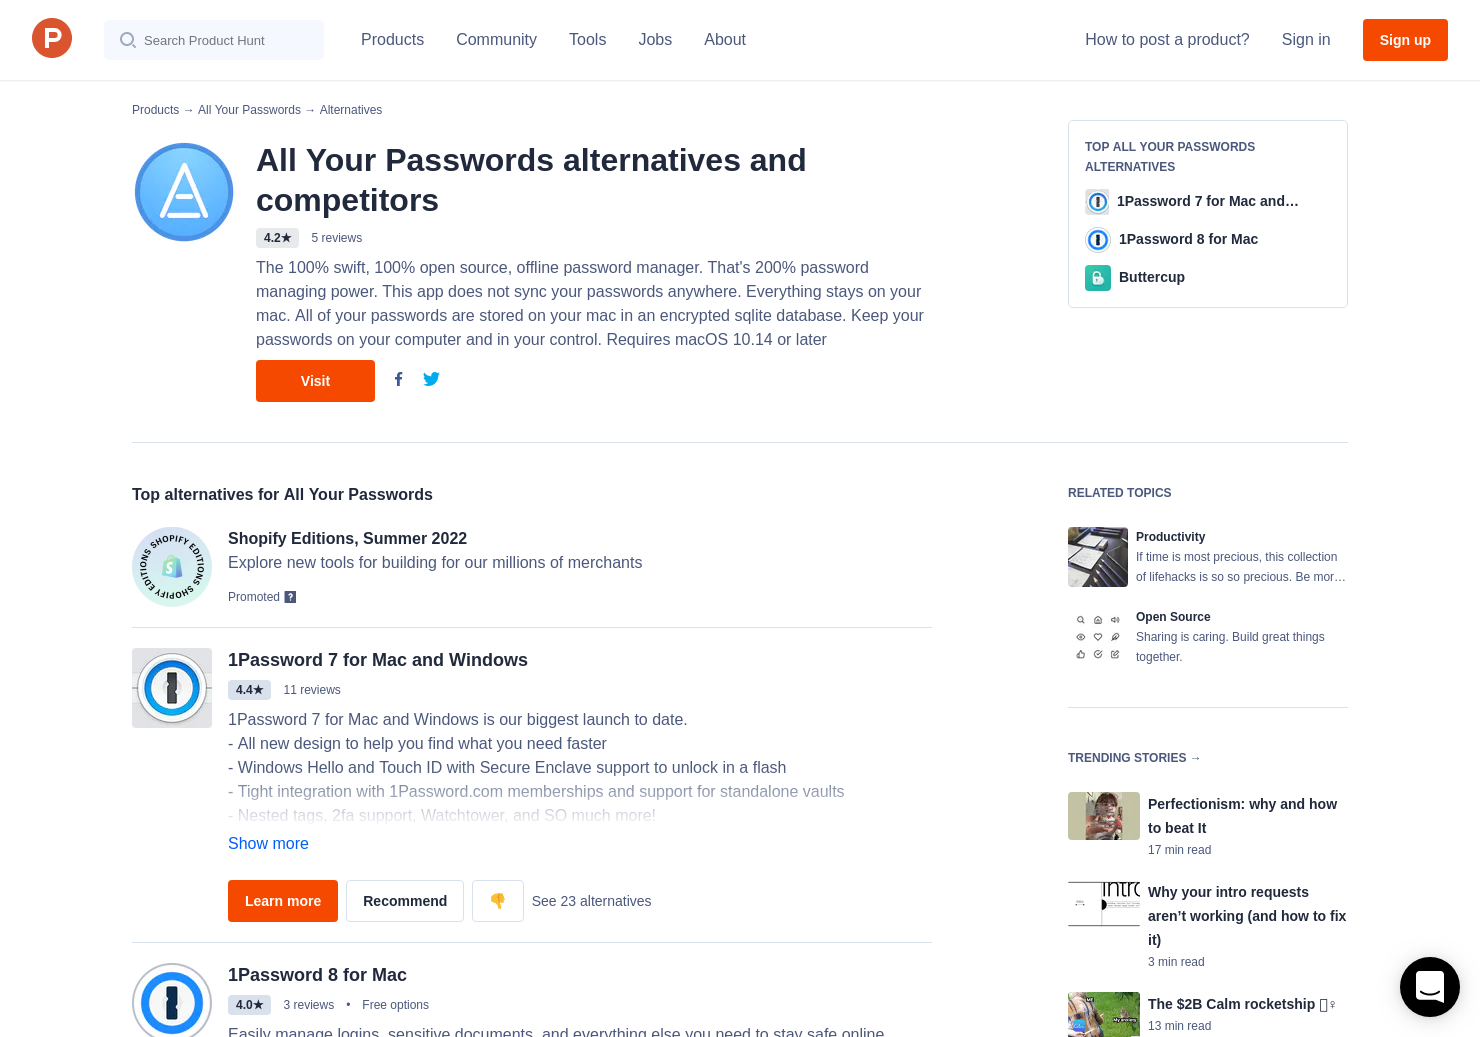 11 Alternatives to All Your Passwords | Product Hunt